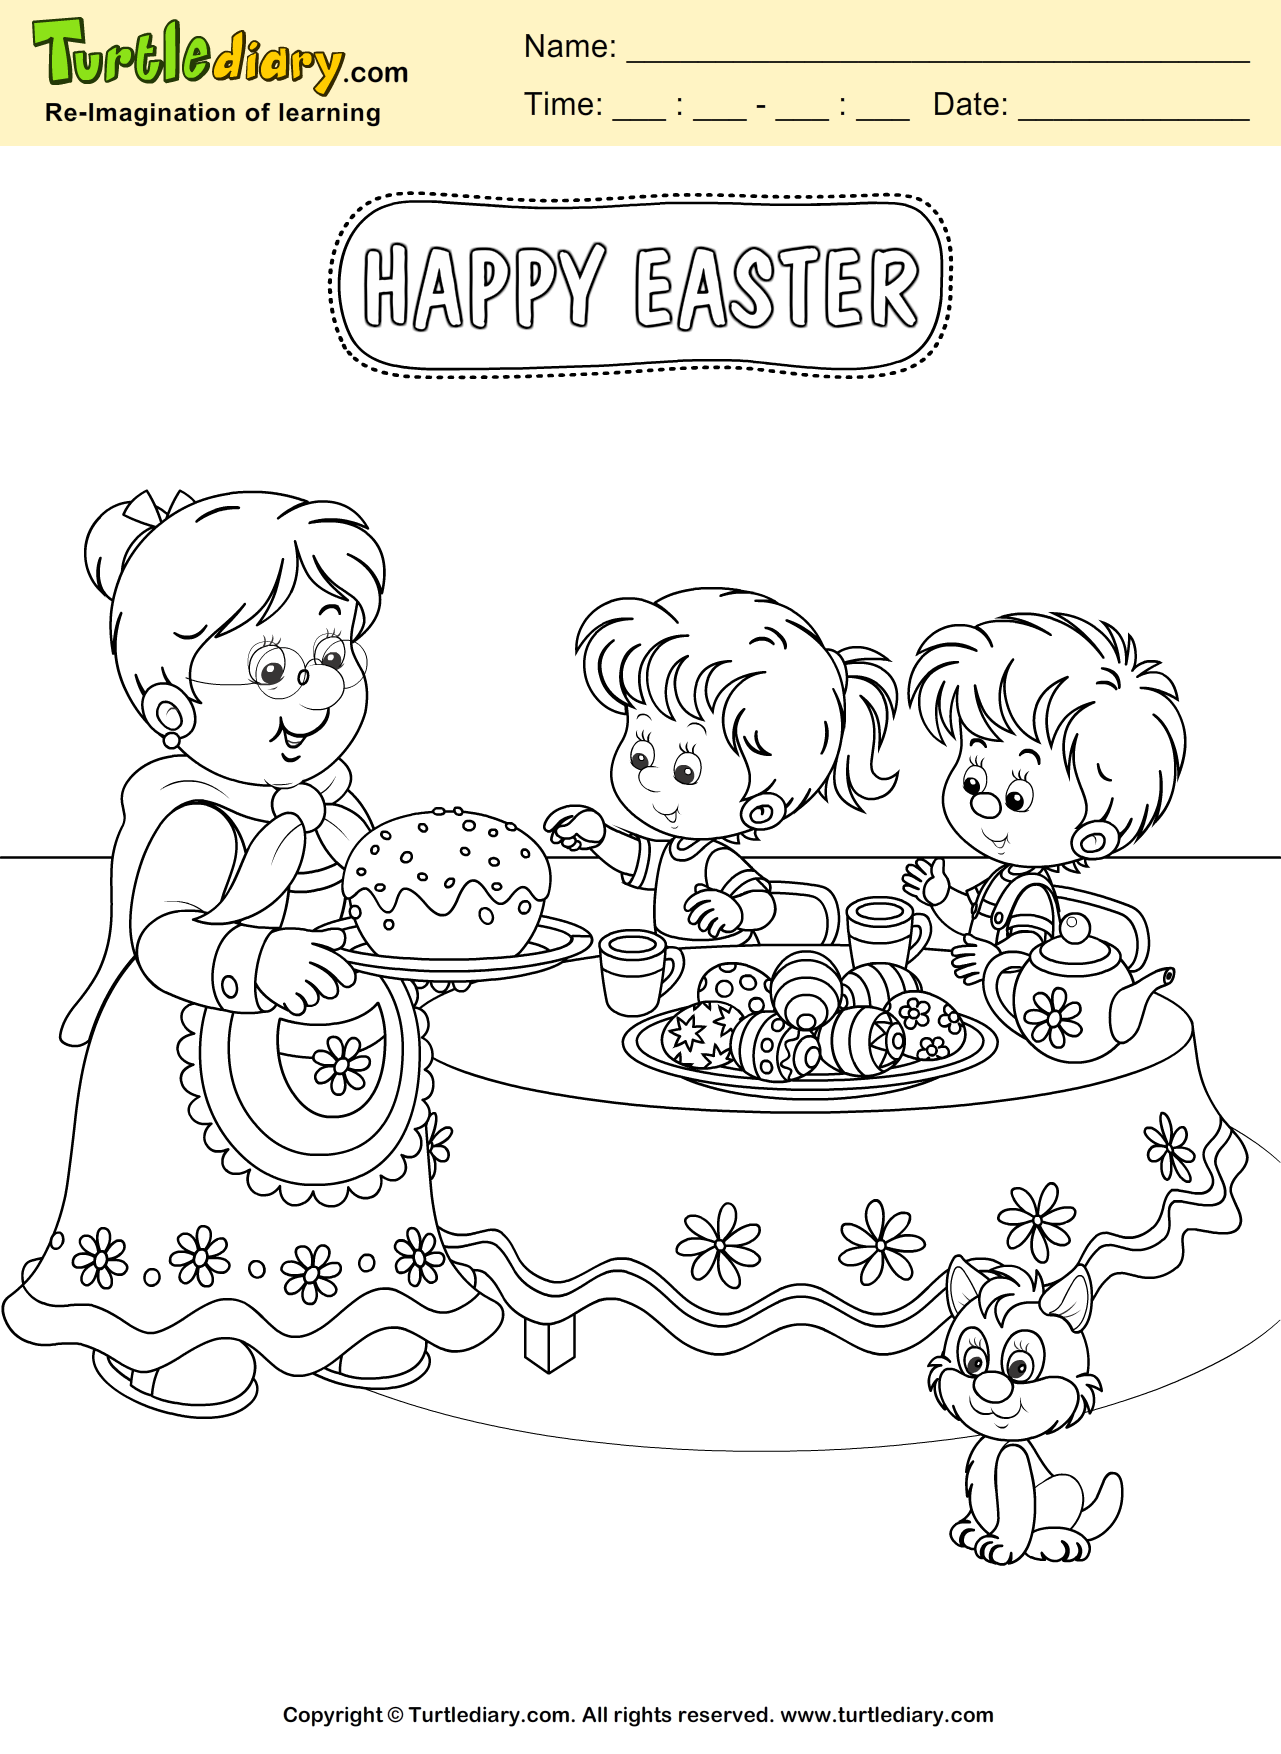 Easter Family Coloring Page Coloring Sheet Family Coloring Pages Easter Coloring Pages Coloring Pages